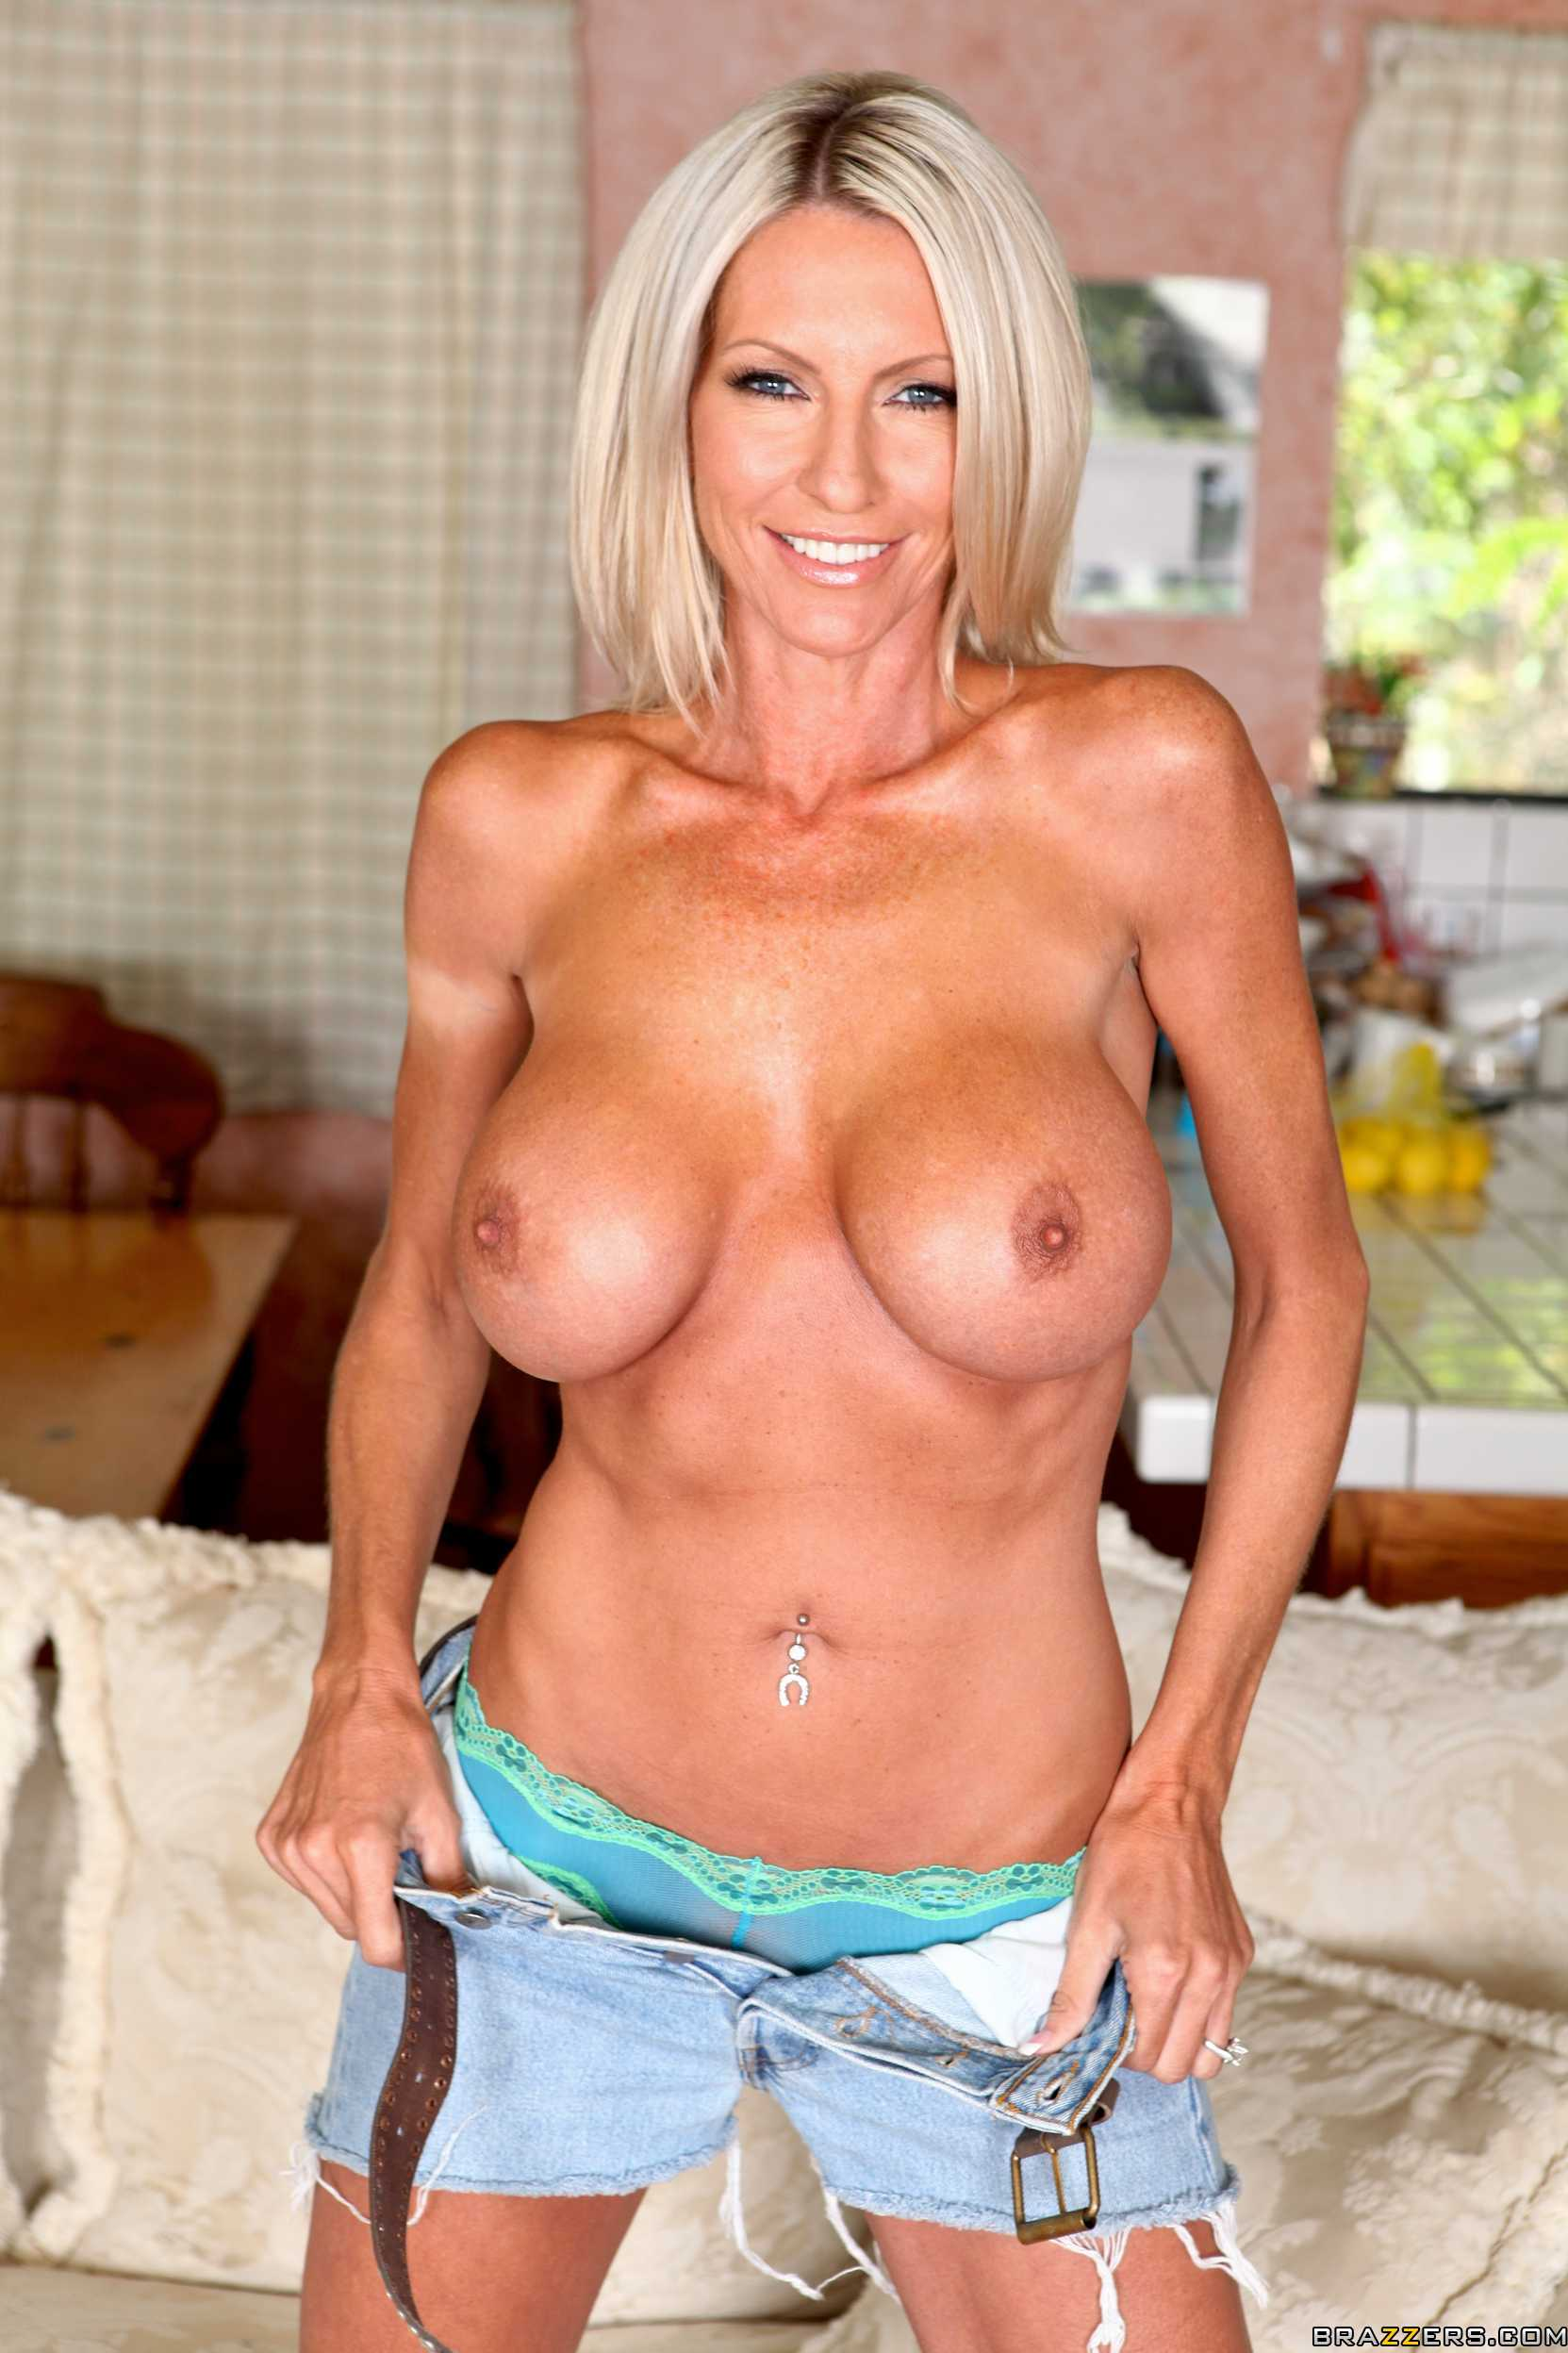 Busty blonde milf emma starr idea will